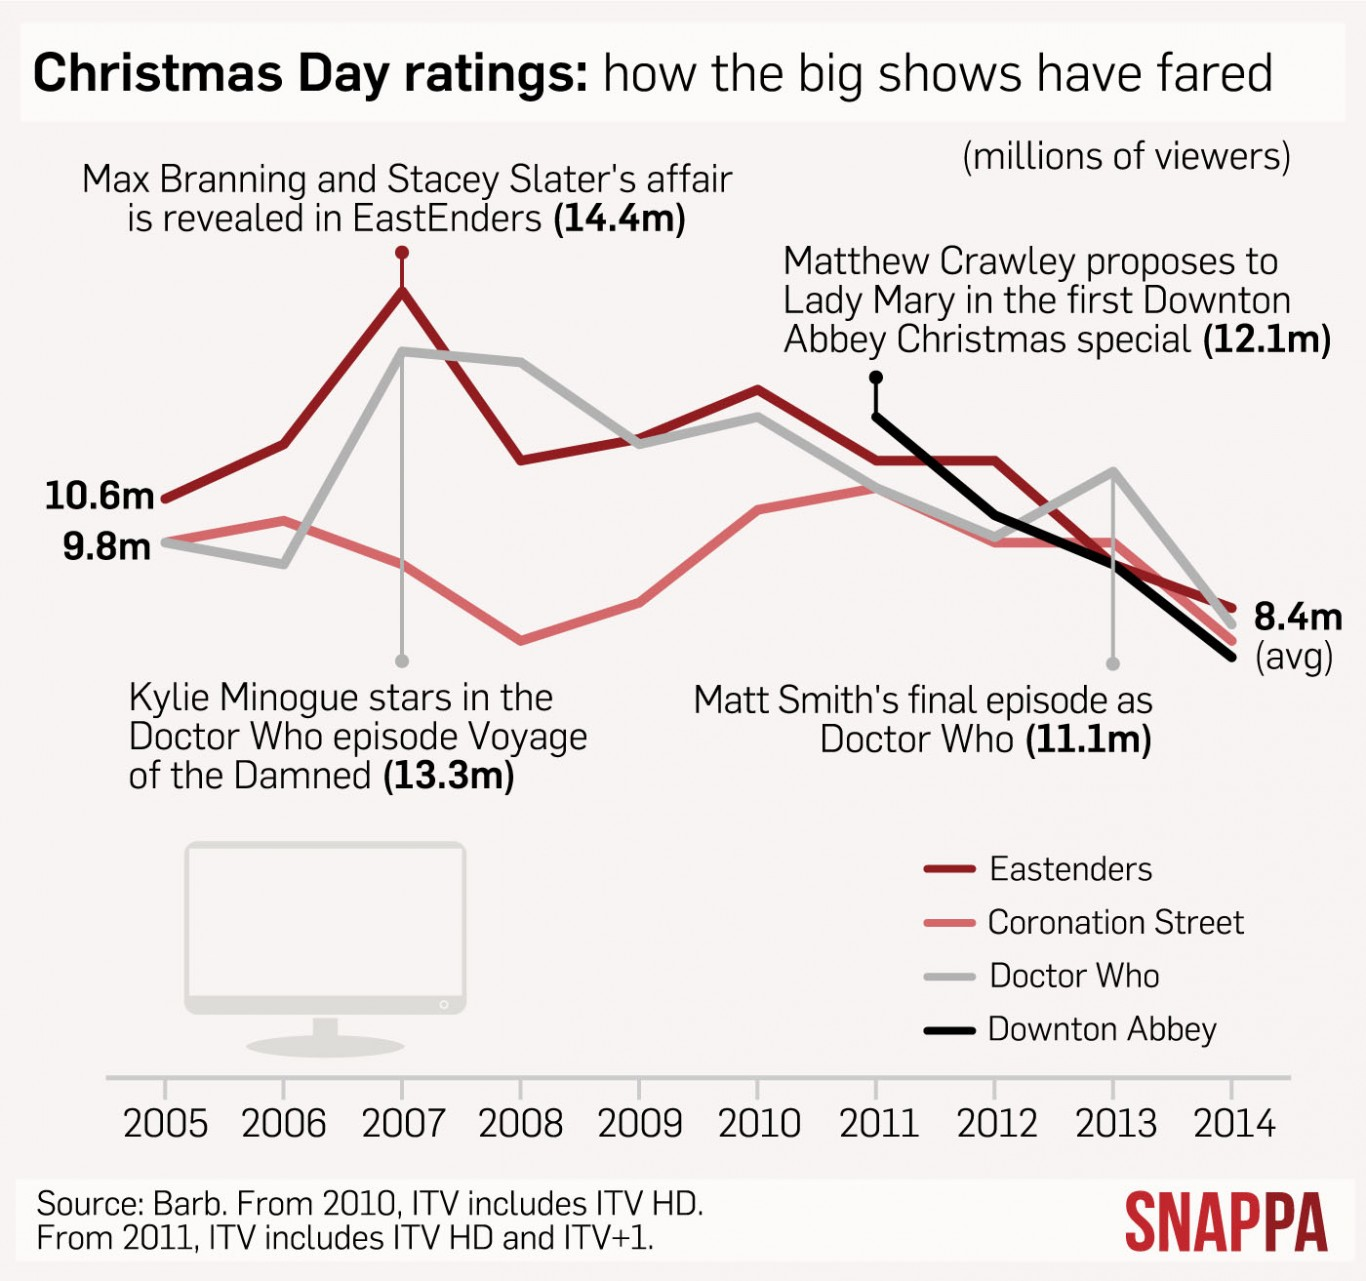 Snappa graphic showing Christmas ratings